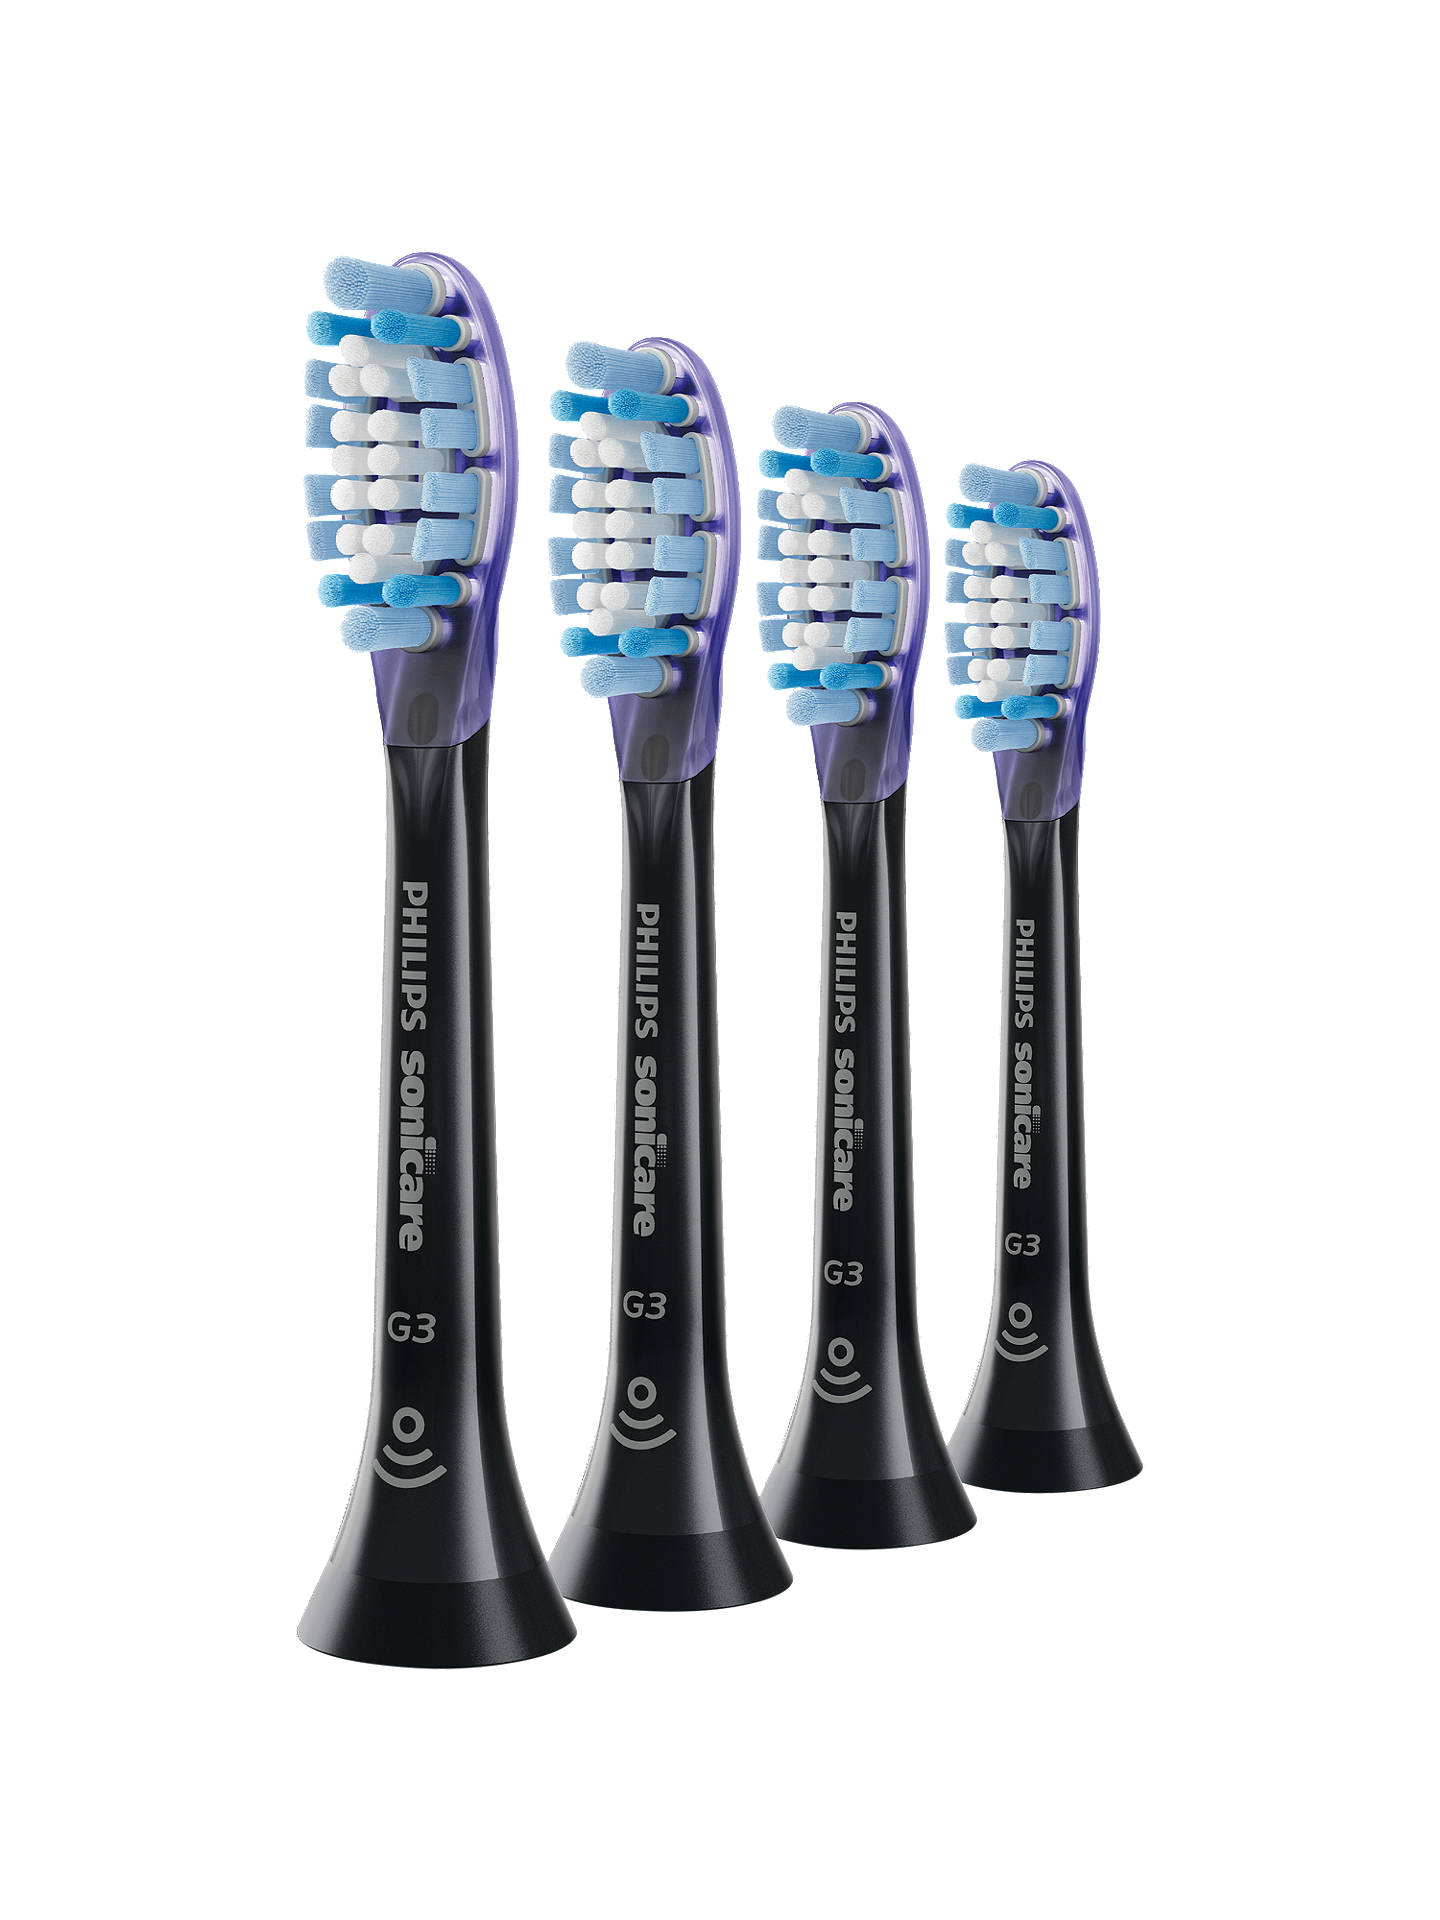 BuyPhilips GumCare HX9054/33 Brush Heads, Pack of 4 Online at johnlewis.com